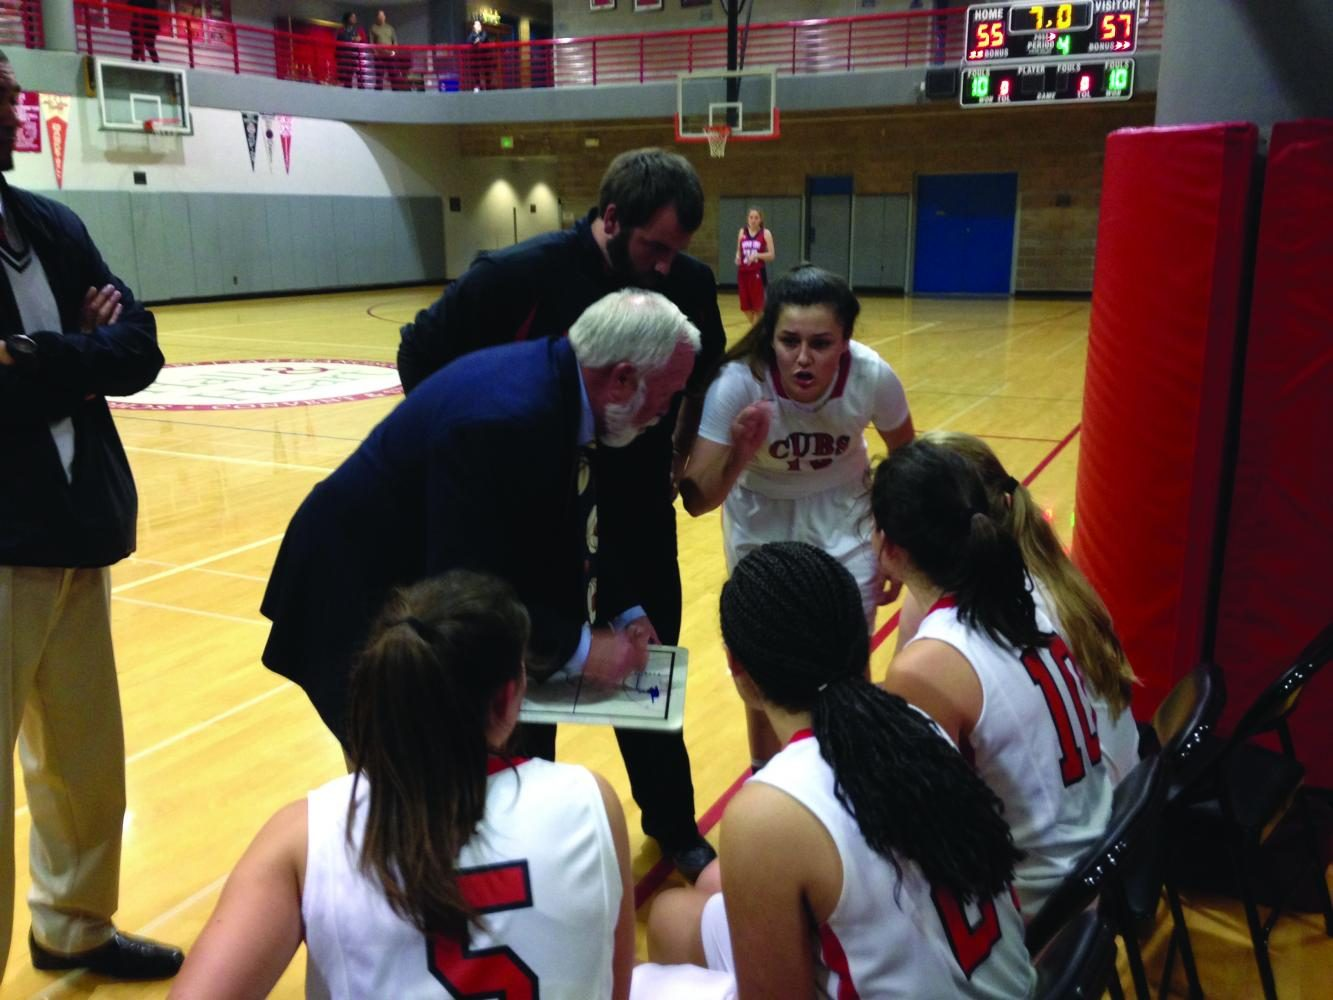 Captain Alyssa Alvarez offers advice to her basketball teammates during the first round of the North Coast Section championship bracket. The team had an undefeated league season but lost the first round of NCS to the Upper Lake Cougars, 56-58.